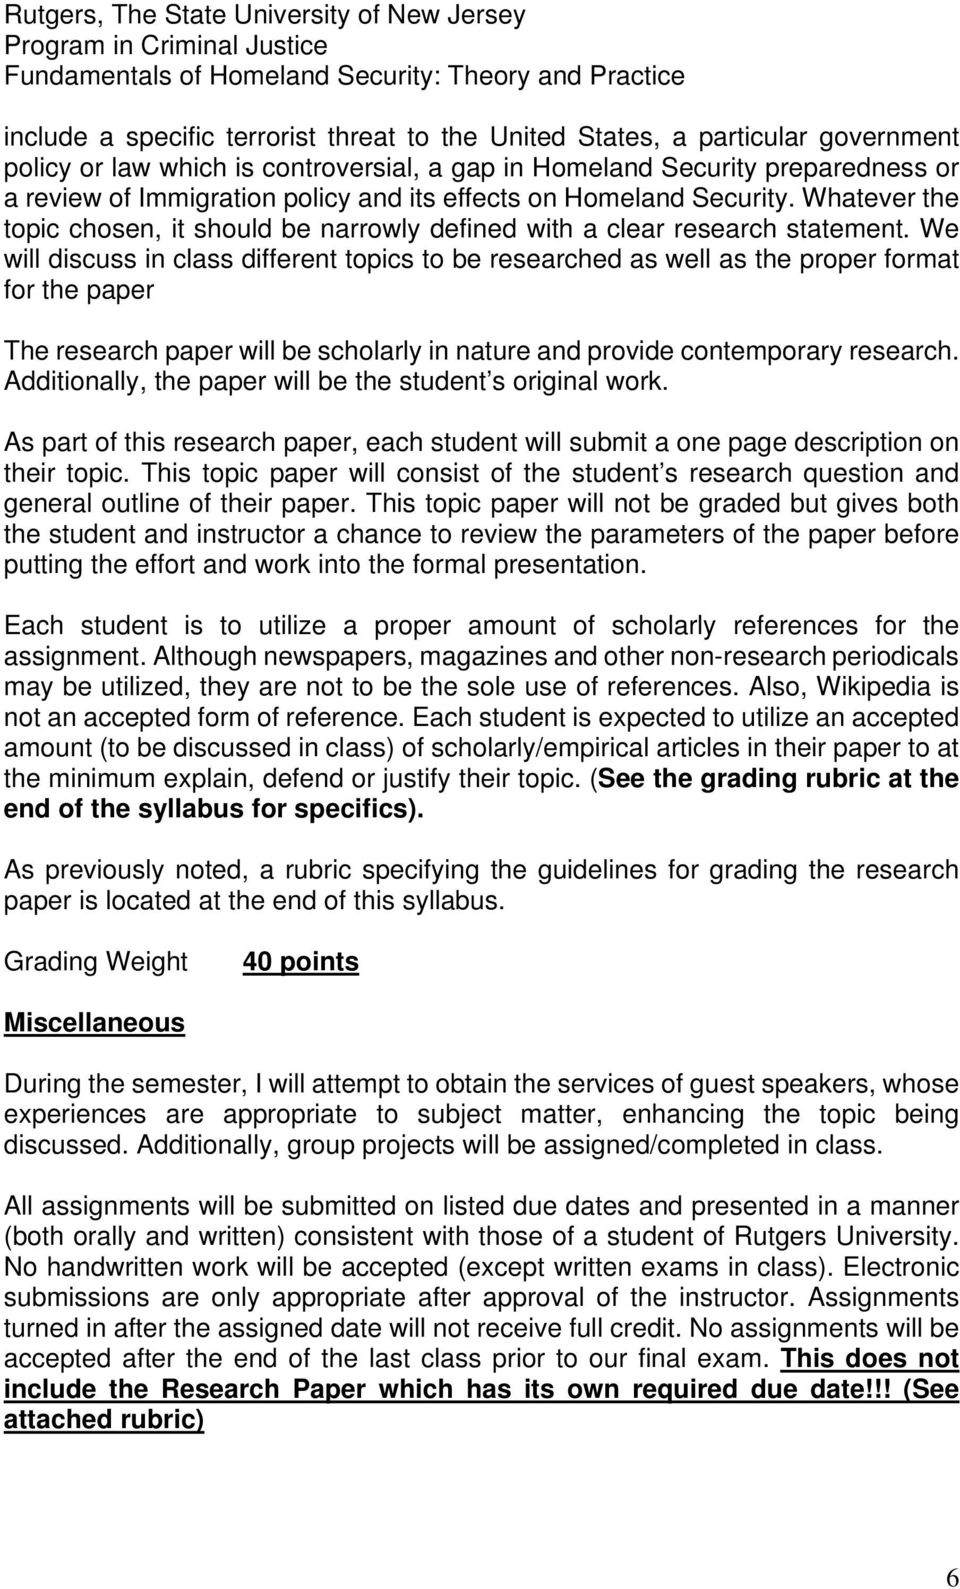 We will discuss in class different topics to be researched as well as the proper format for the paper The research paper will be scholarly in nature provide contemporary research.